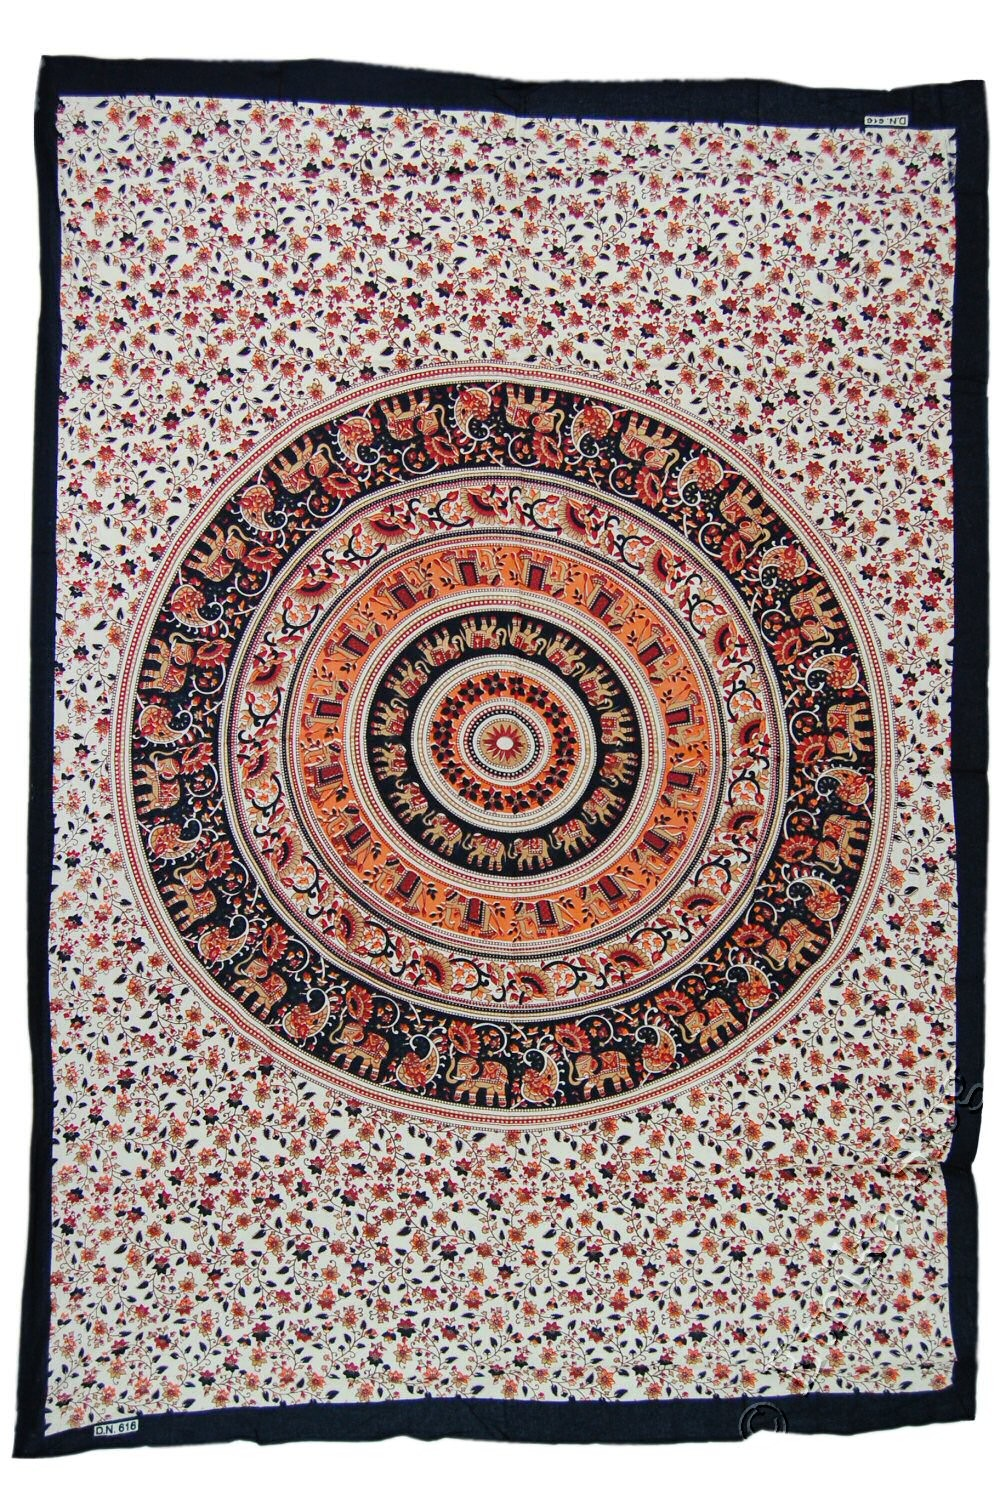 SMALL AND MEDIUM INDIAN TOWELS TI-P01-49 - Oriente Import S.r.l.